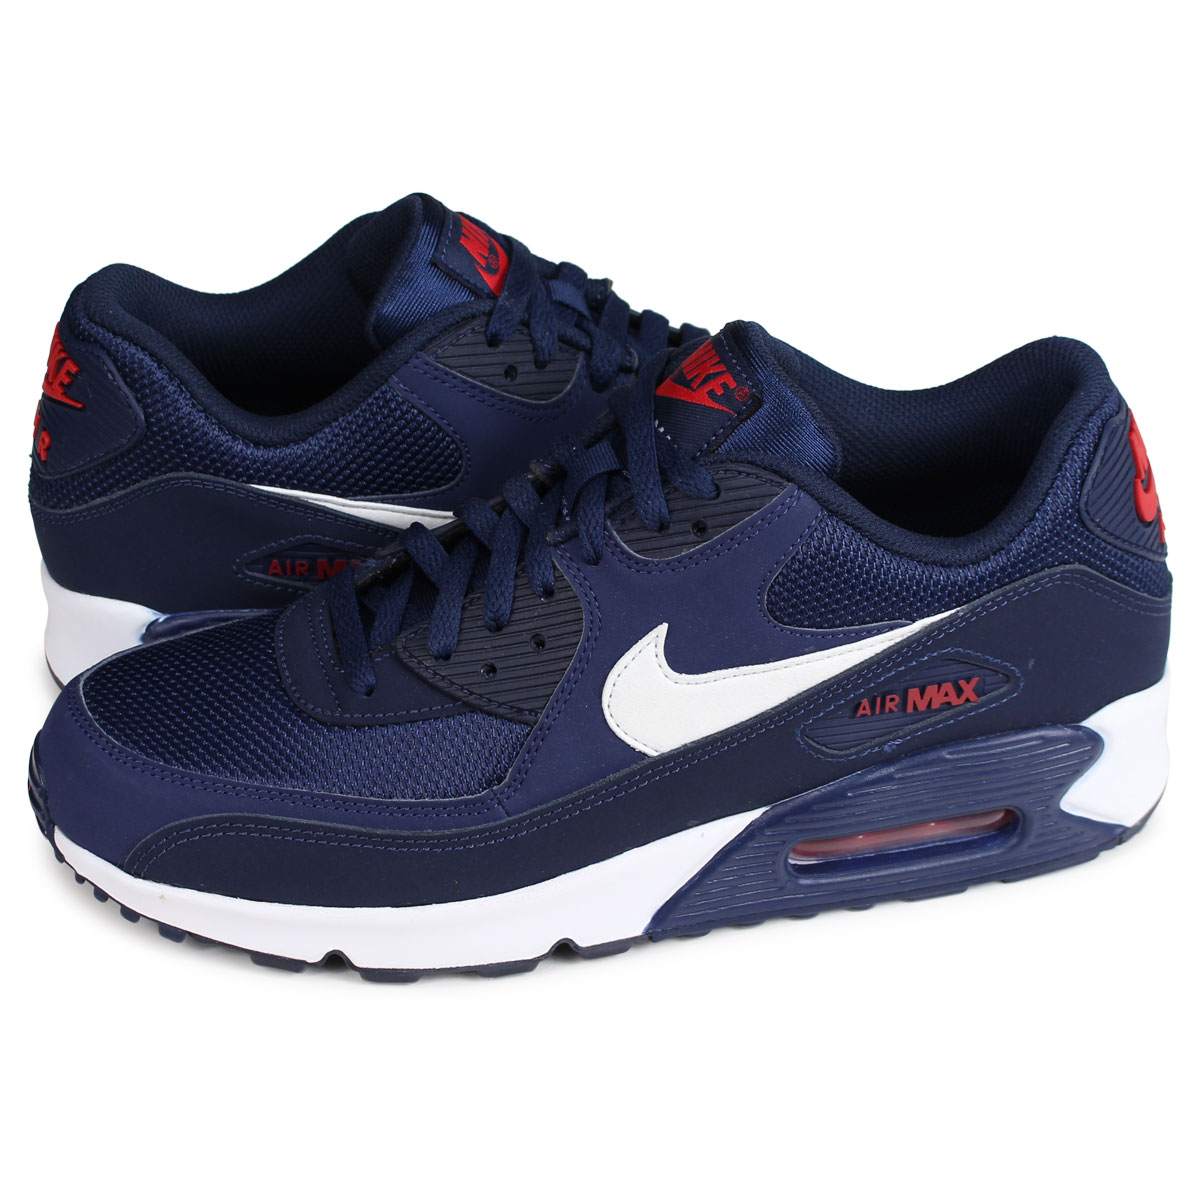 7287f399d18 Nike NIKE Air Max 90 essential sneakers men AIR MAX 90 ESSENTIAL navy AJ1285 -403  load planned Shinnyu load in reservation product 1 30 containing